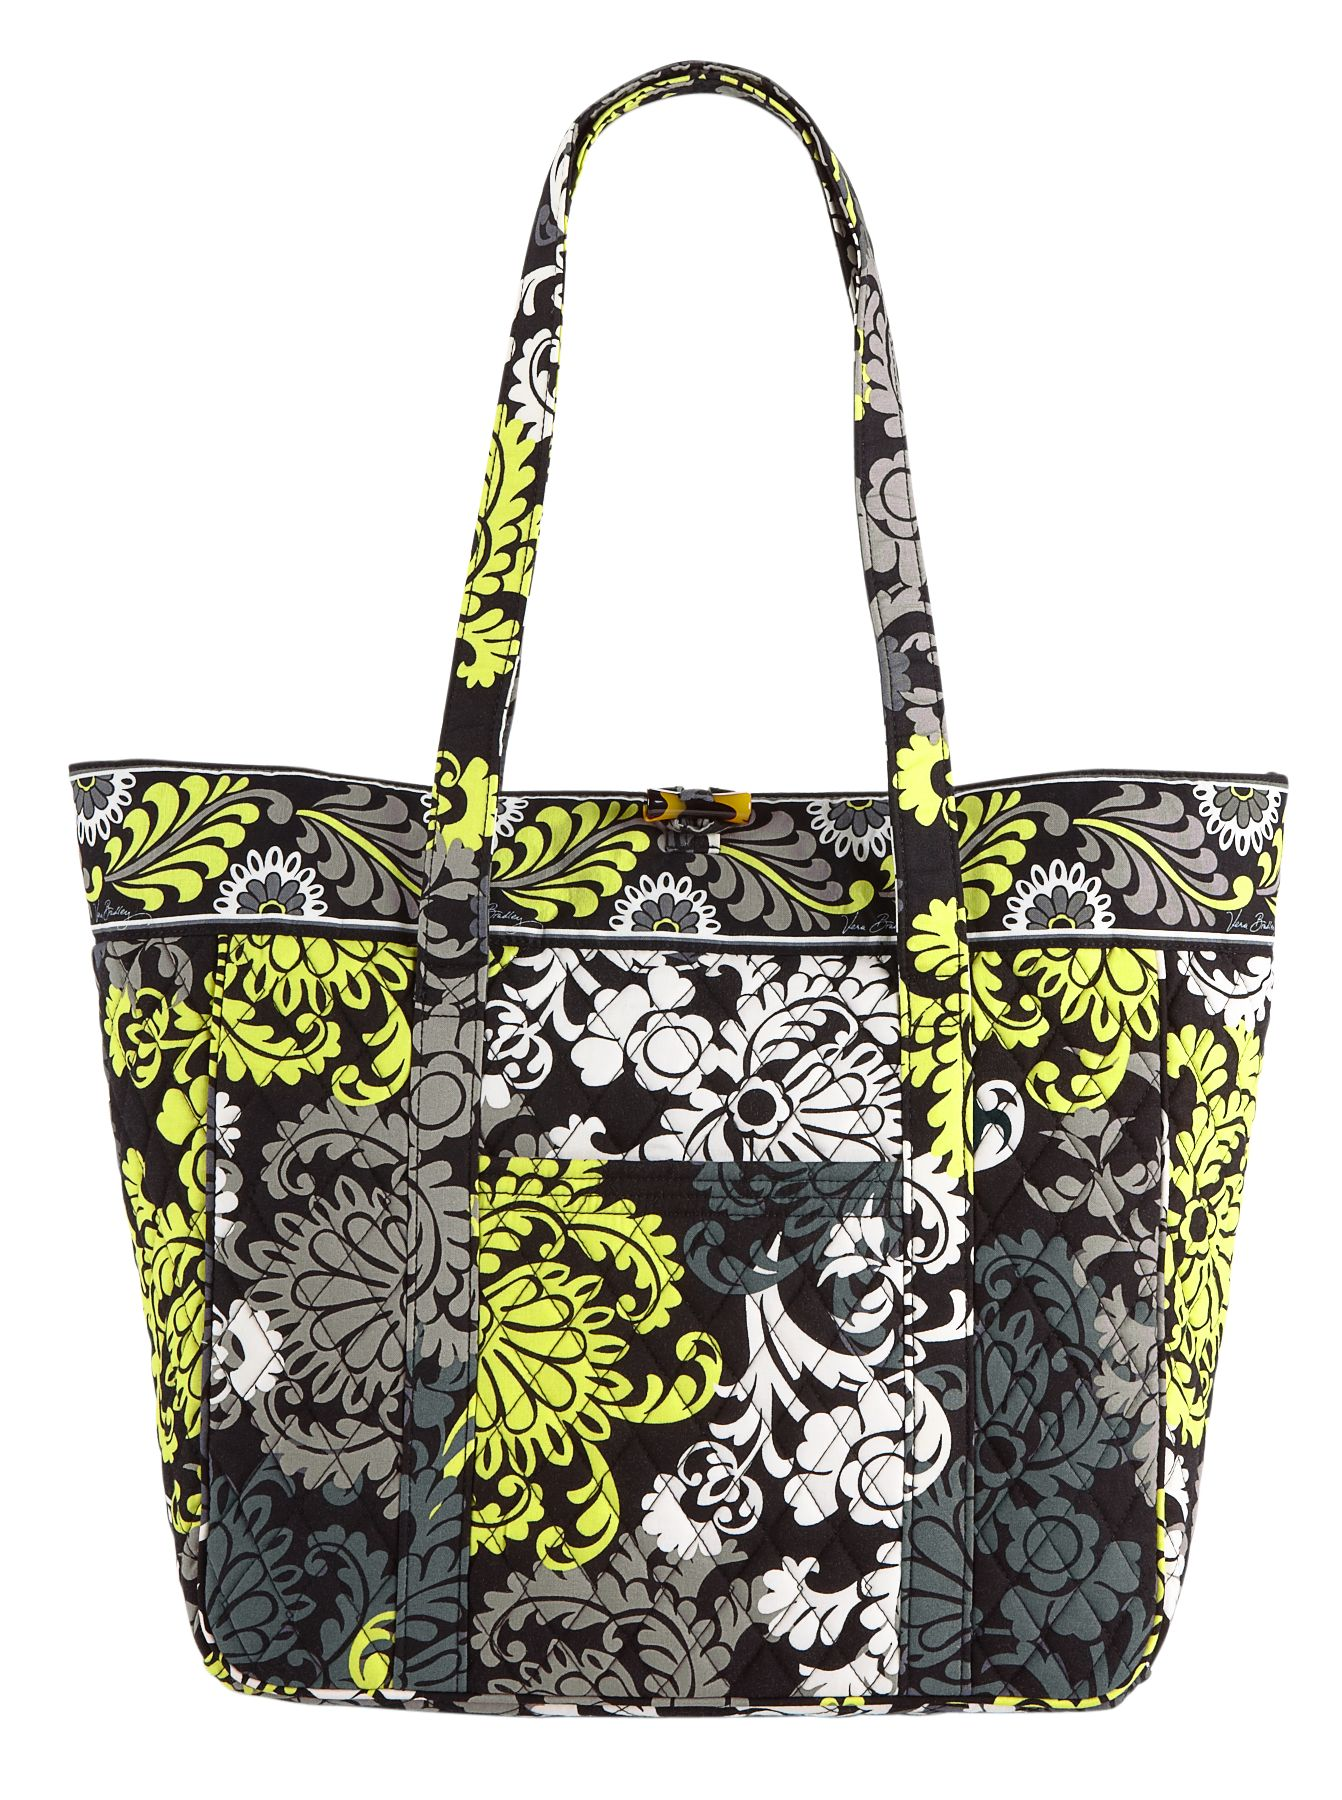 We have 13 Vera Bradley promotional codes for you to choose from including 13 sales. Most popular now: Up to 50% Off Vera Bradley Sale. Latest offer: Up to 50% Off Vera Bradley Sale.